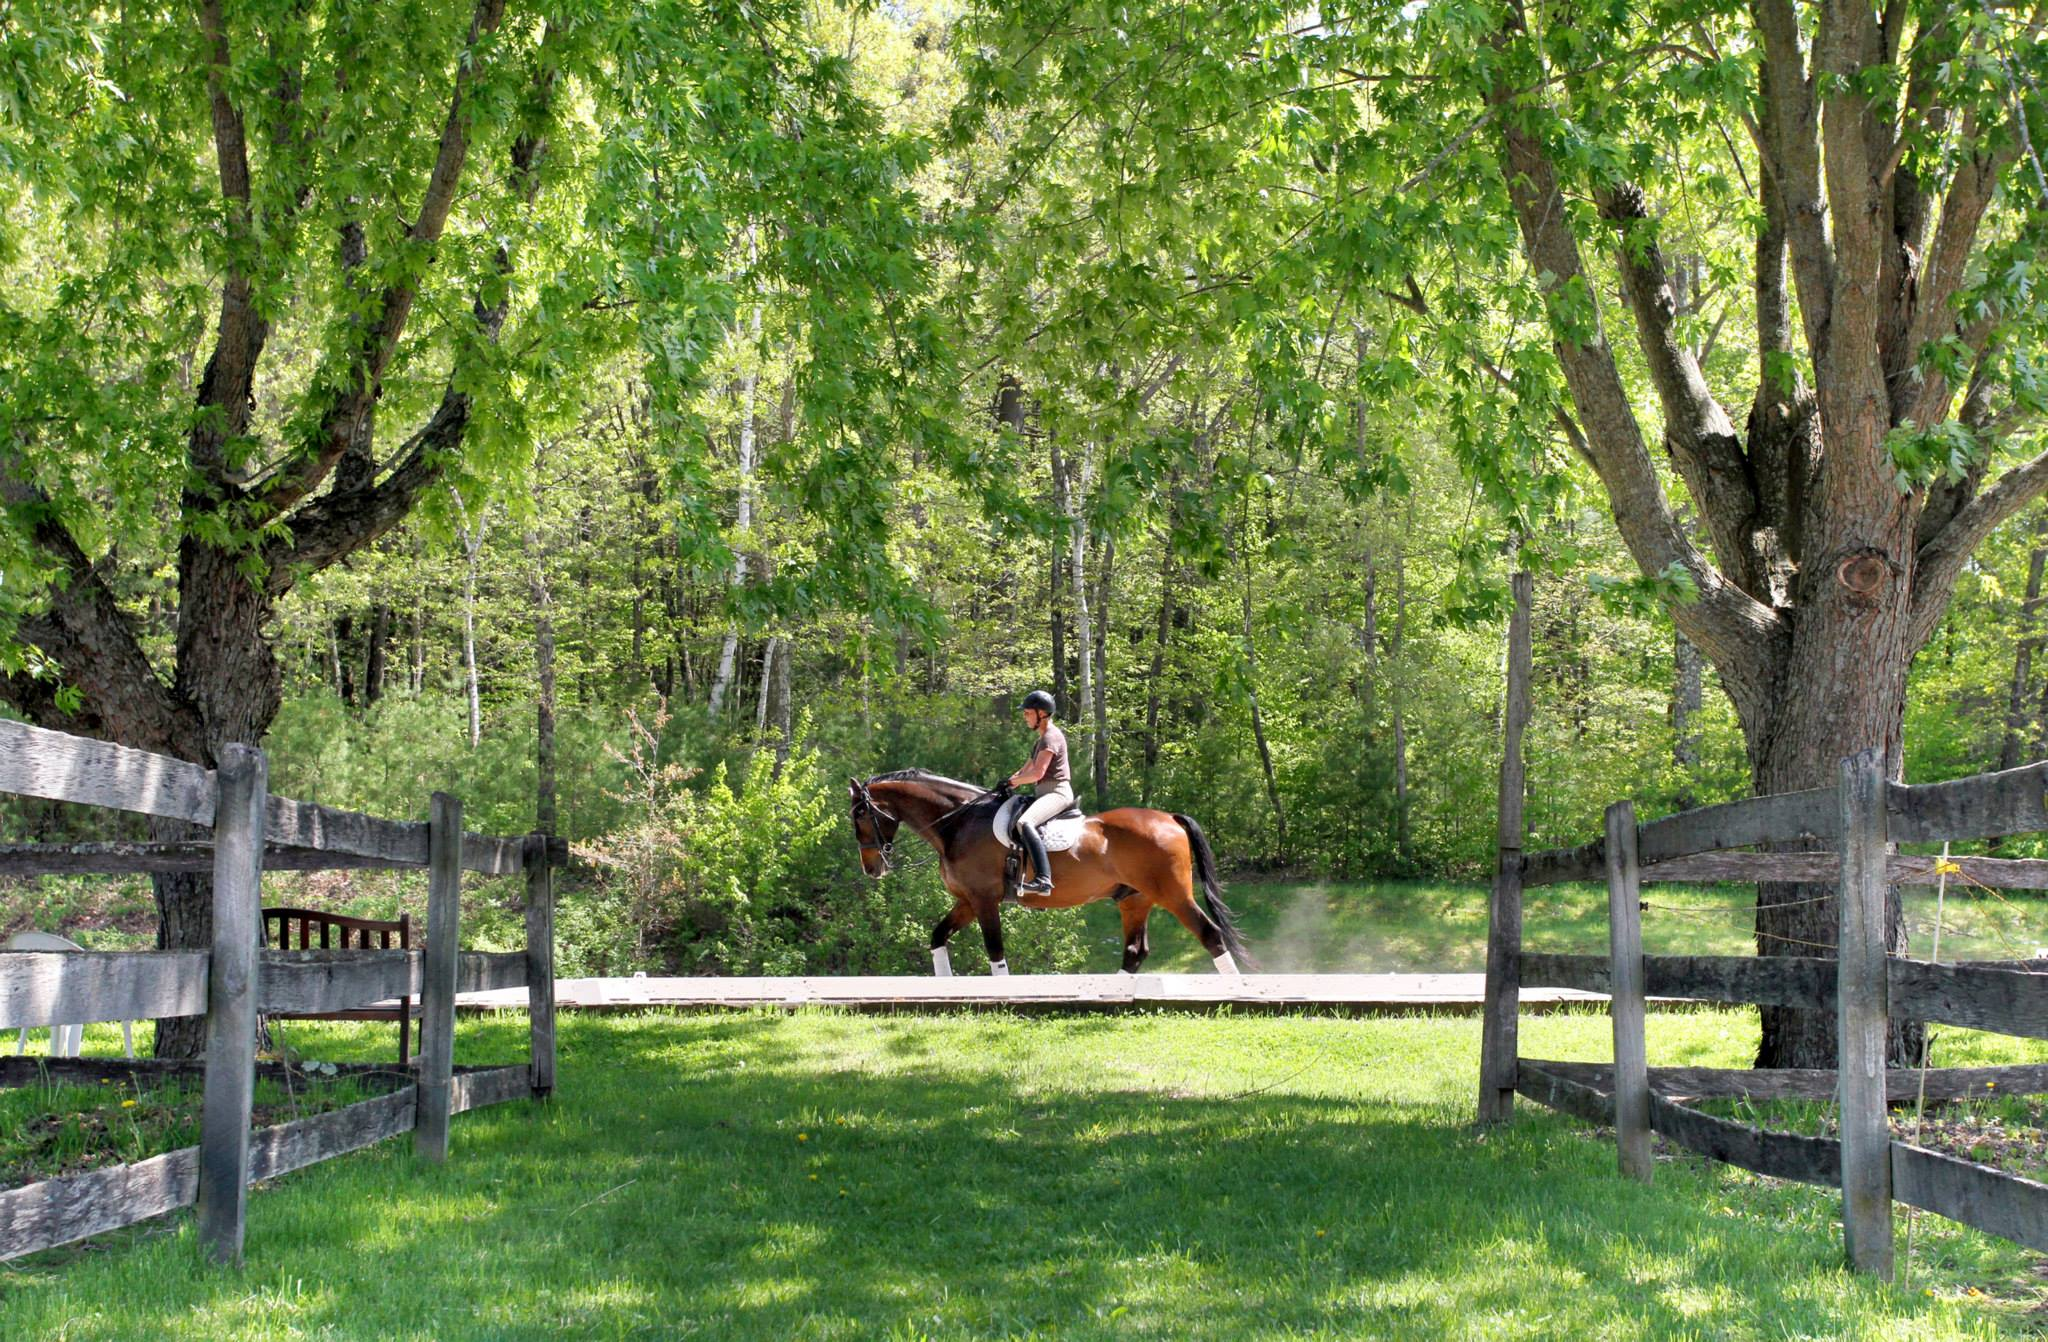 MONTAGUE, MASS. --Brenna Kucinski schools her horse Regent at Xenophon Farm in Montague on Wednesday. (Recorder/Micky Bedell)